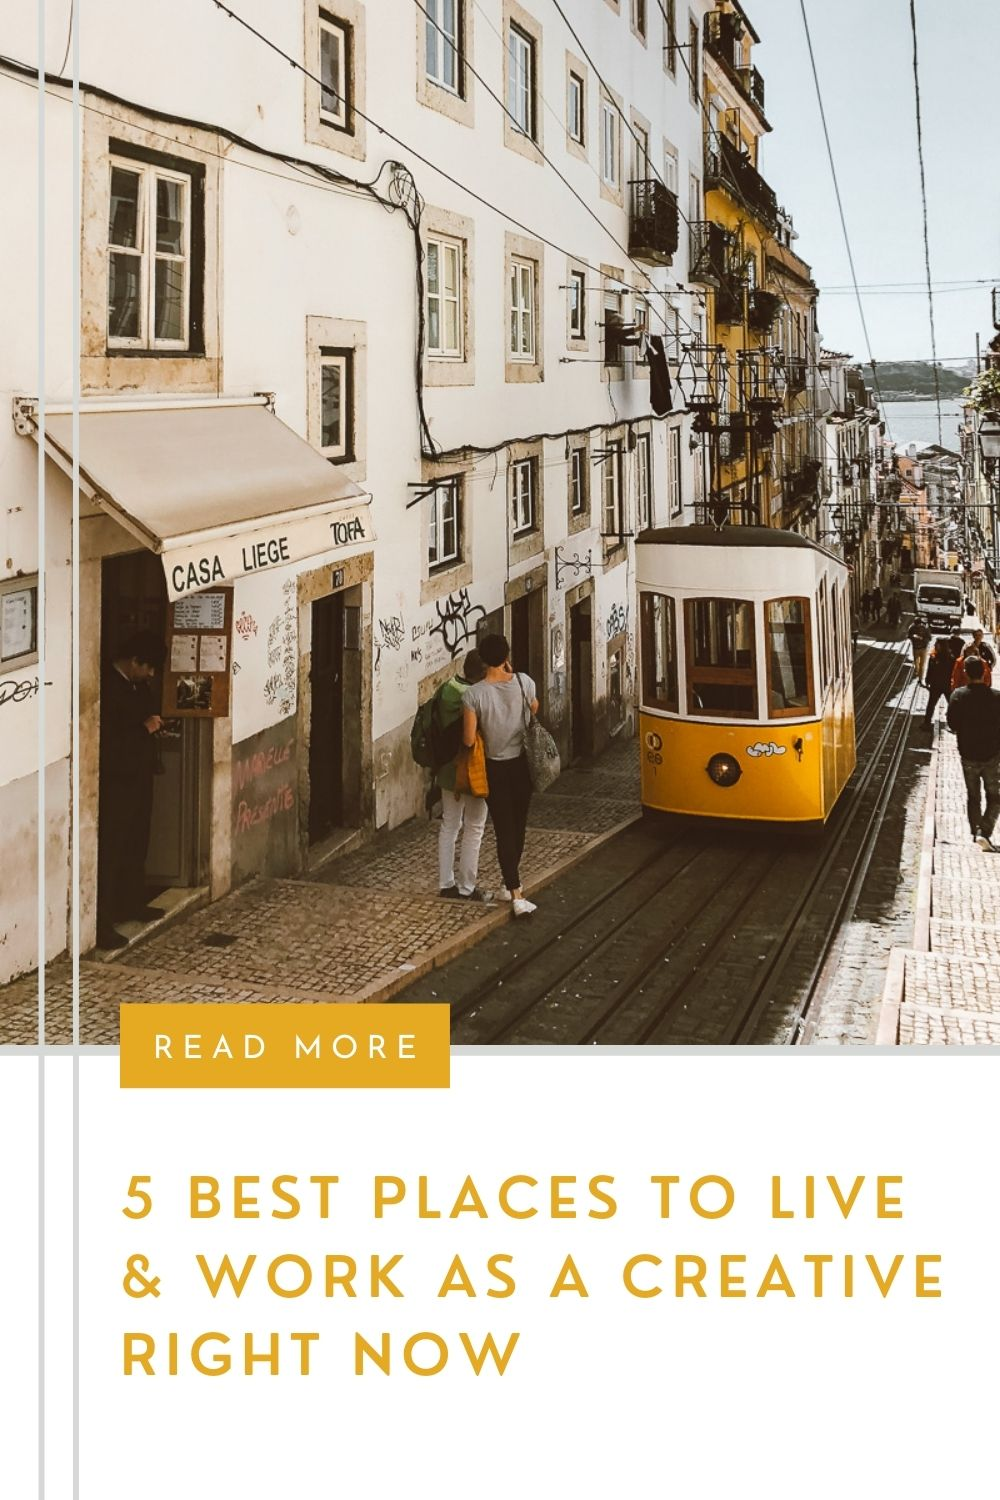 The 5 best places to live & work as a creative right now